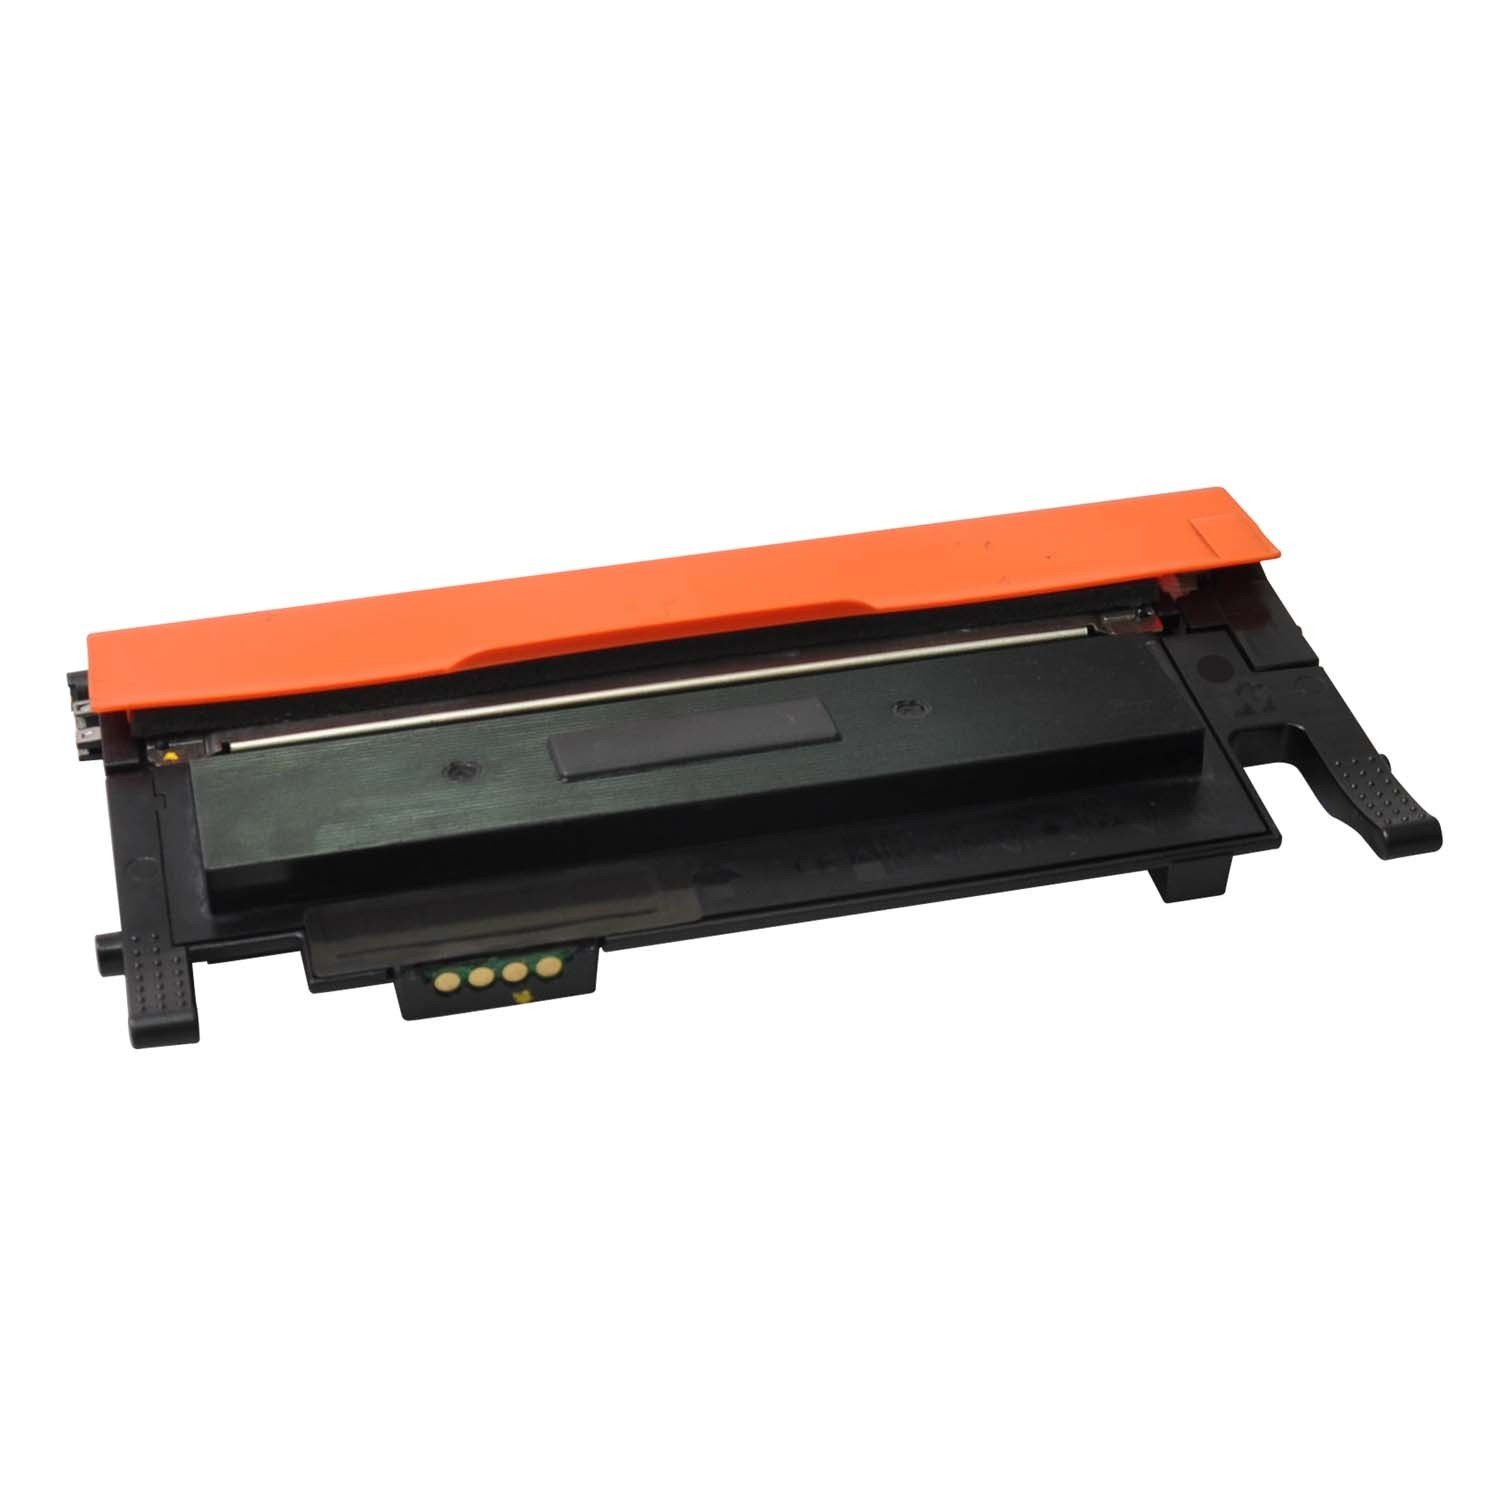 V7 Toner for select Samsung printers - Replaces CLT-K406S/ELS